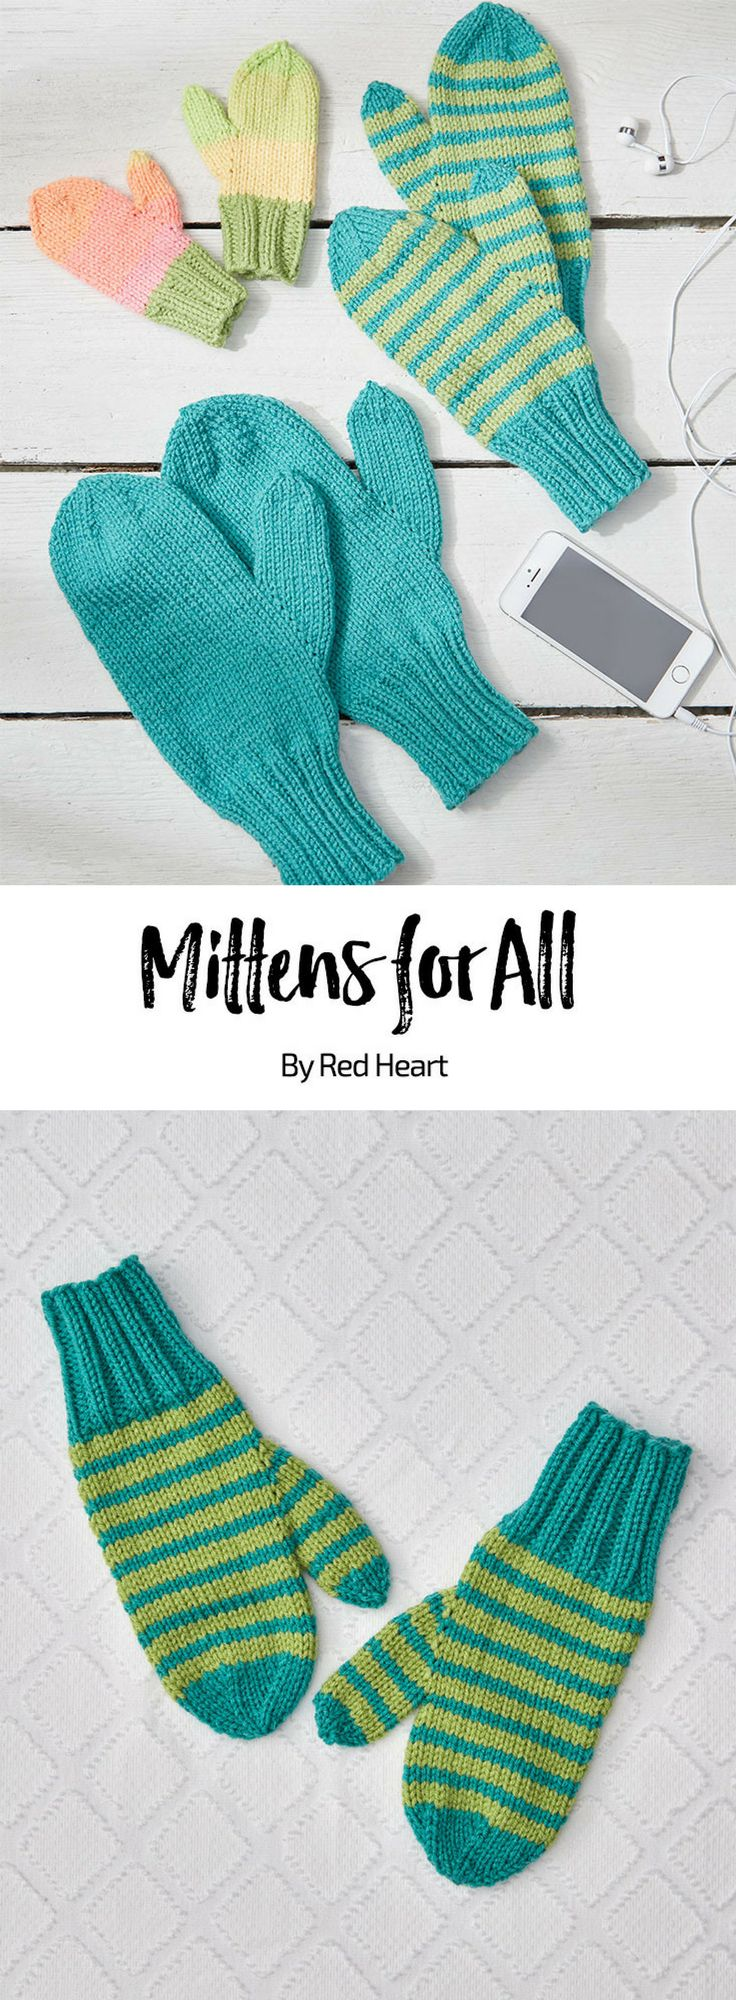 Mittens for All free knit pattern in Super Saver yarn.